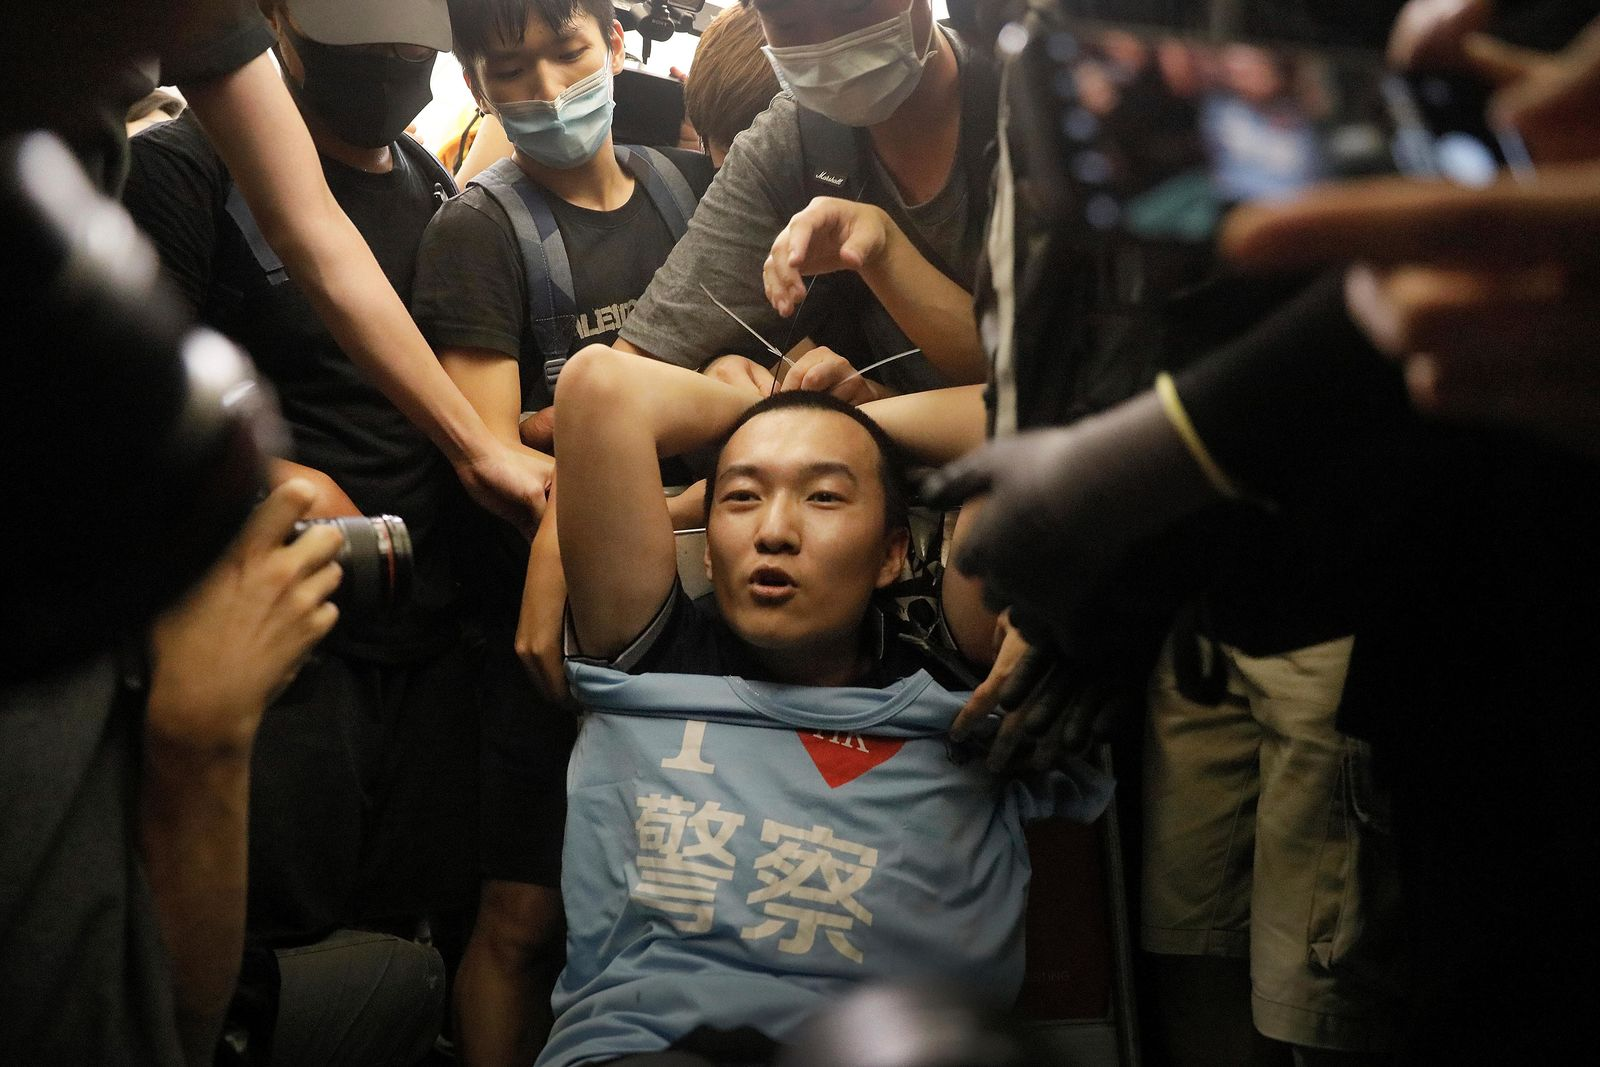 "Protesters surround a man carrying a t-shirt baring the words ""I love police"" who protesters claimed was a police officer from mainland China, during a demonstration at the Airport in Hong Kong, Tuesday, Aug. 13, 2019. Riot police clashed with pro-democracy protesters at Hong Kong's airport late Tuesday night, a chaotic end to a second day of demonstrations that caused mass flight cancellations at the Chinese city's busy transport hub. (AP Photo/Vincent Yu)"